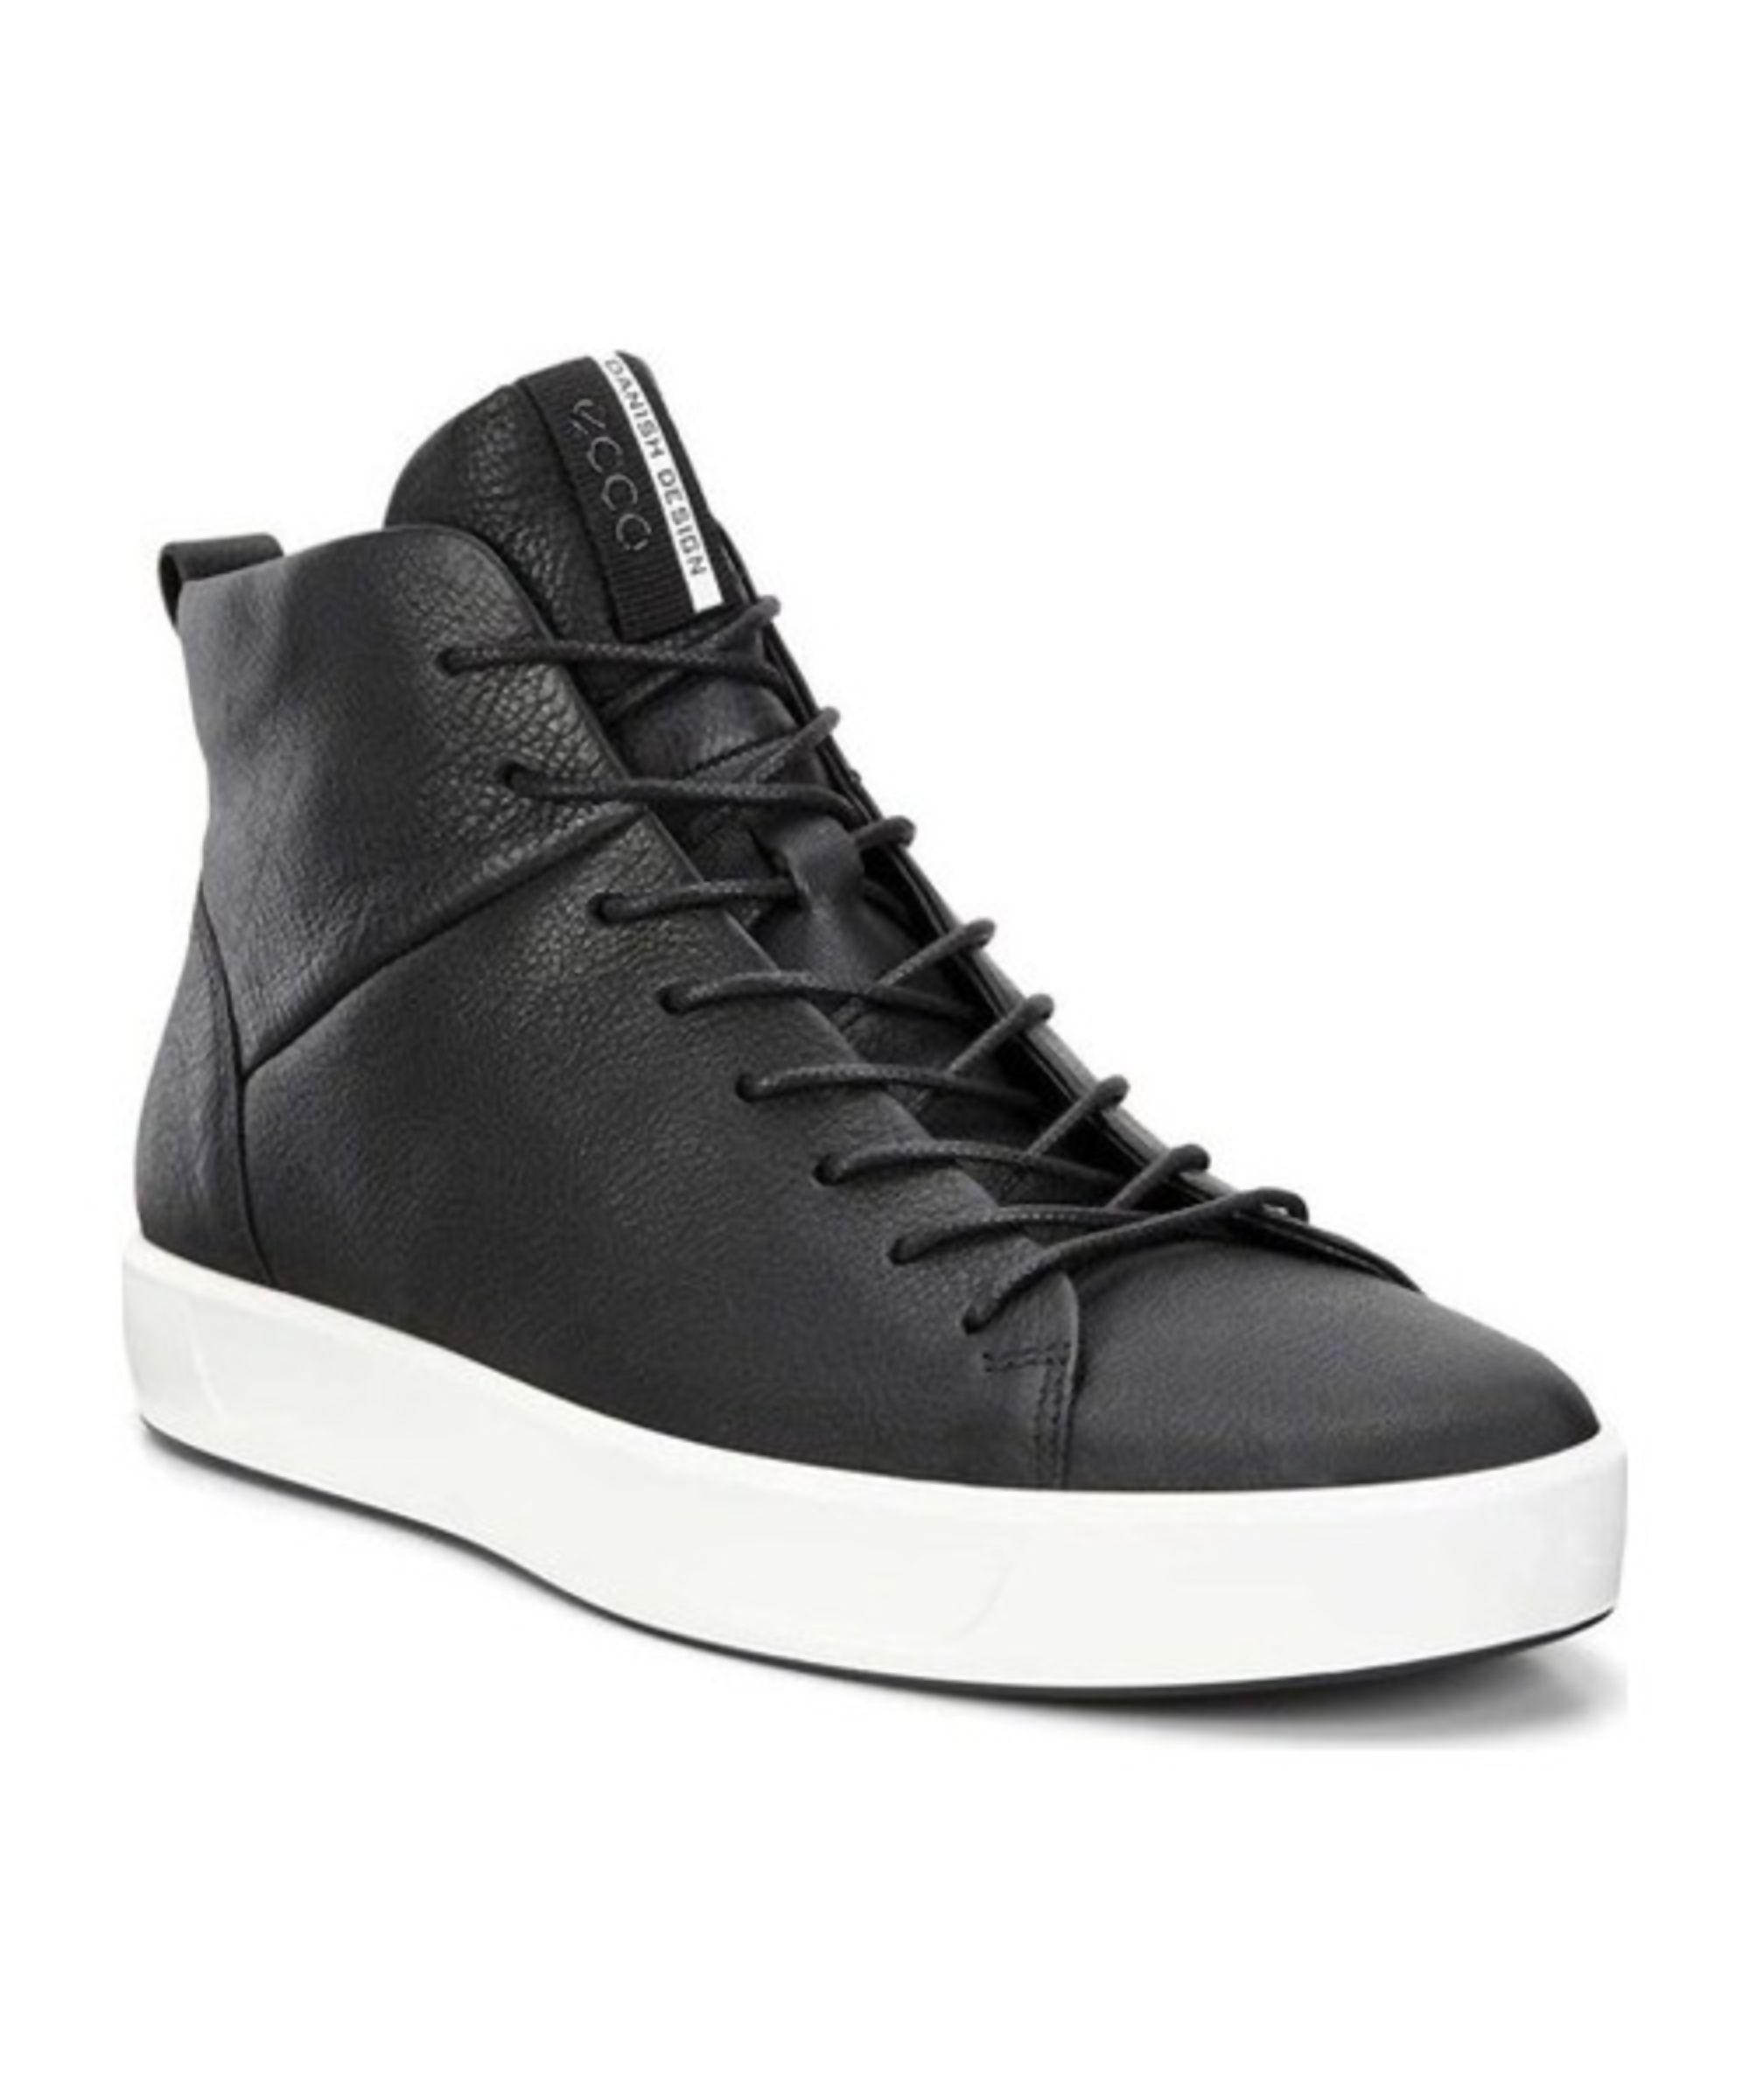 Shoes #Sneakers #ECCO